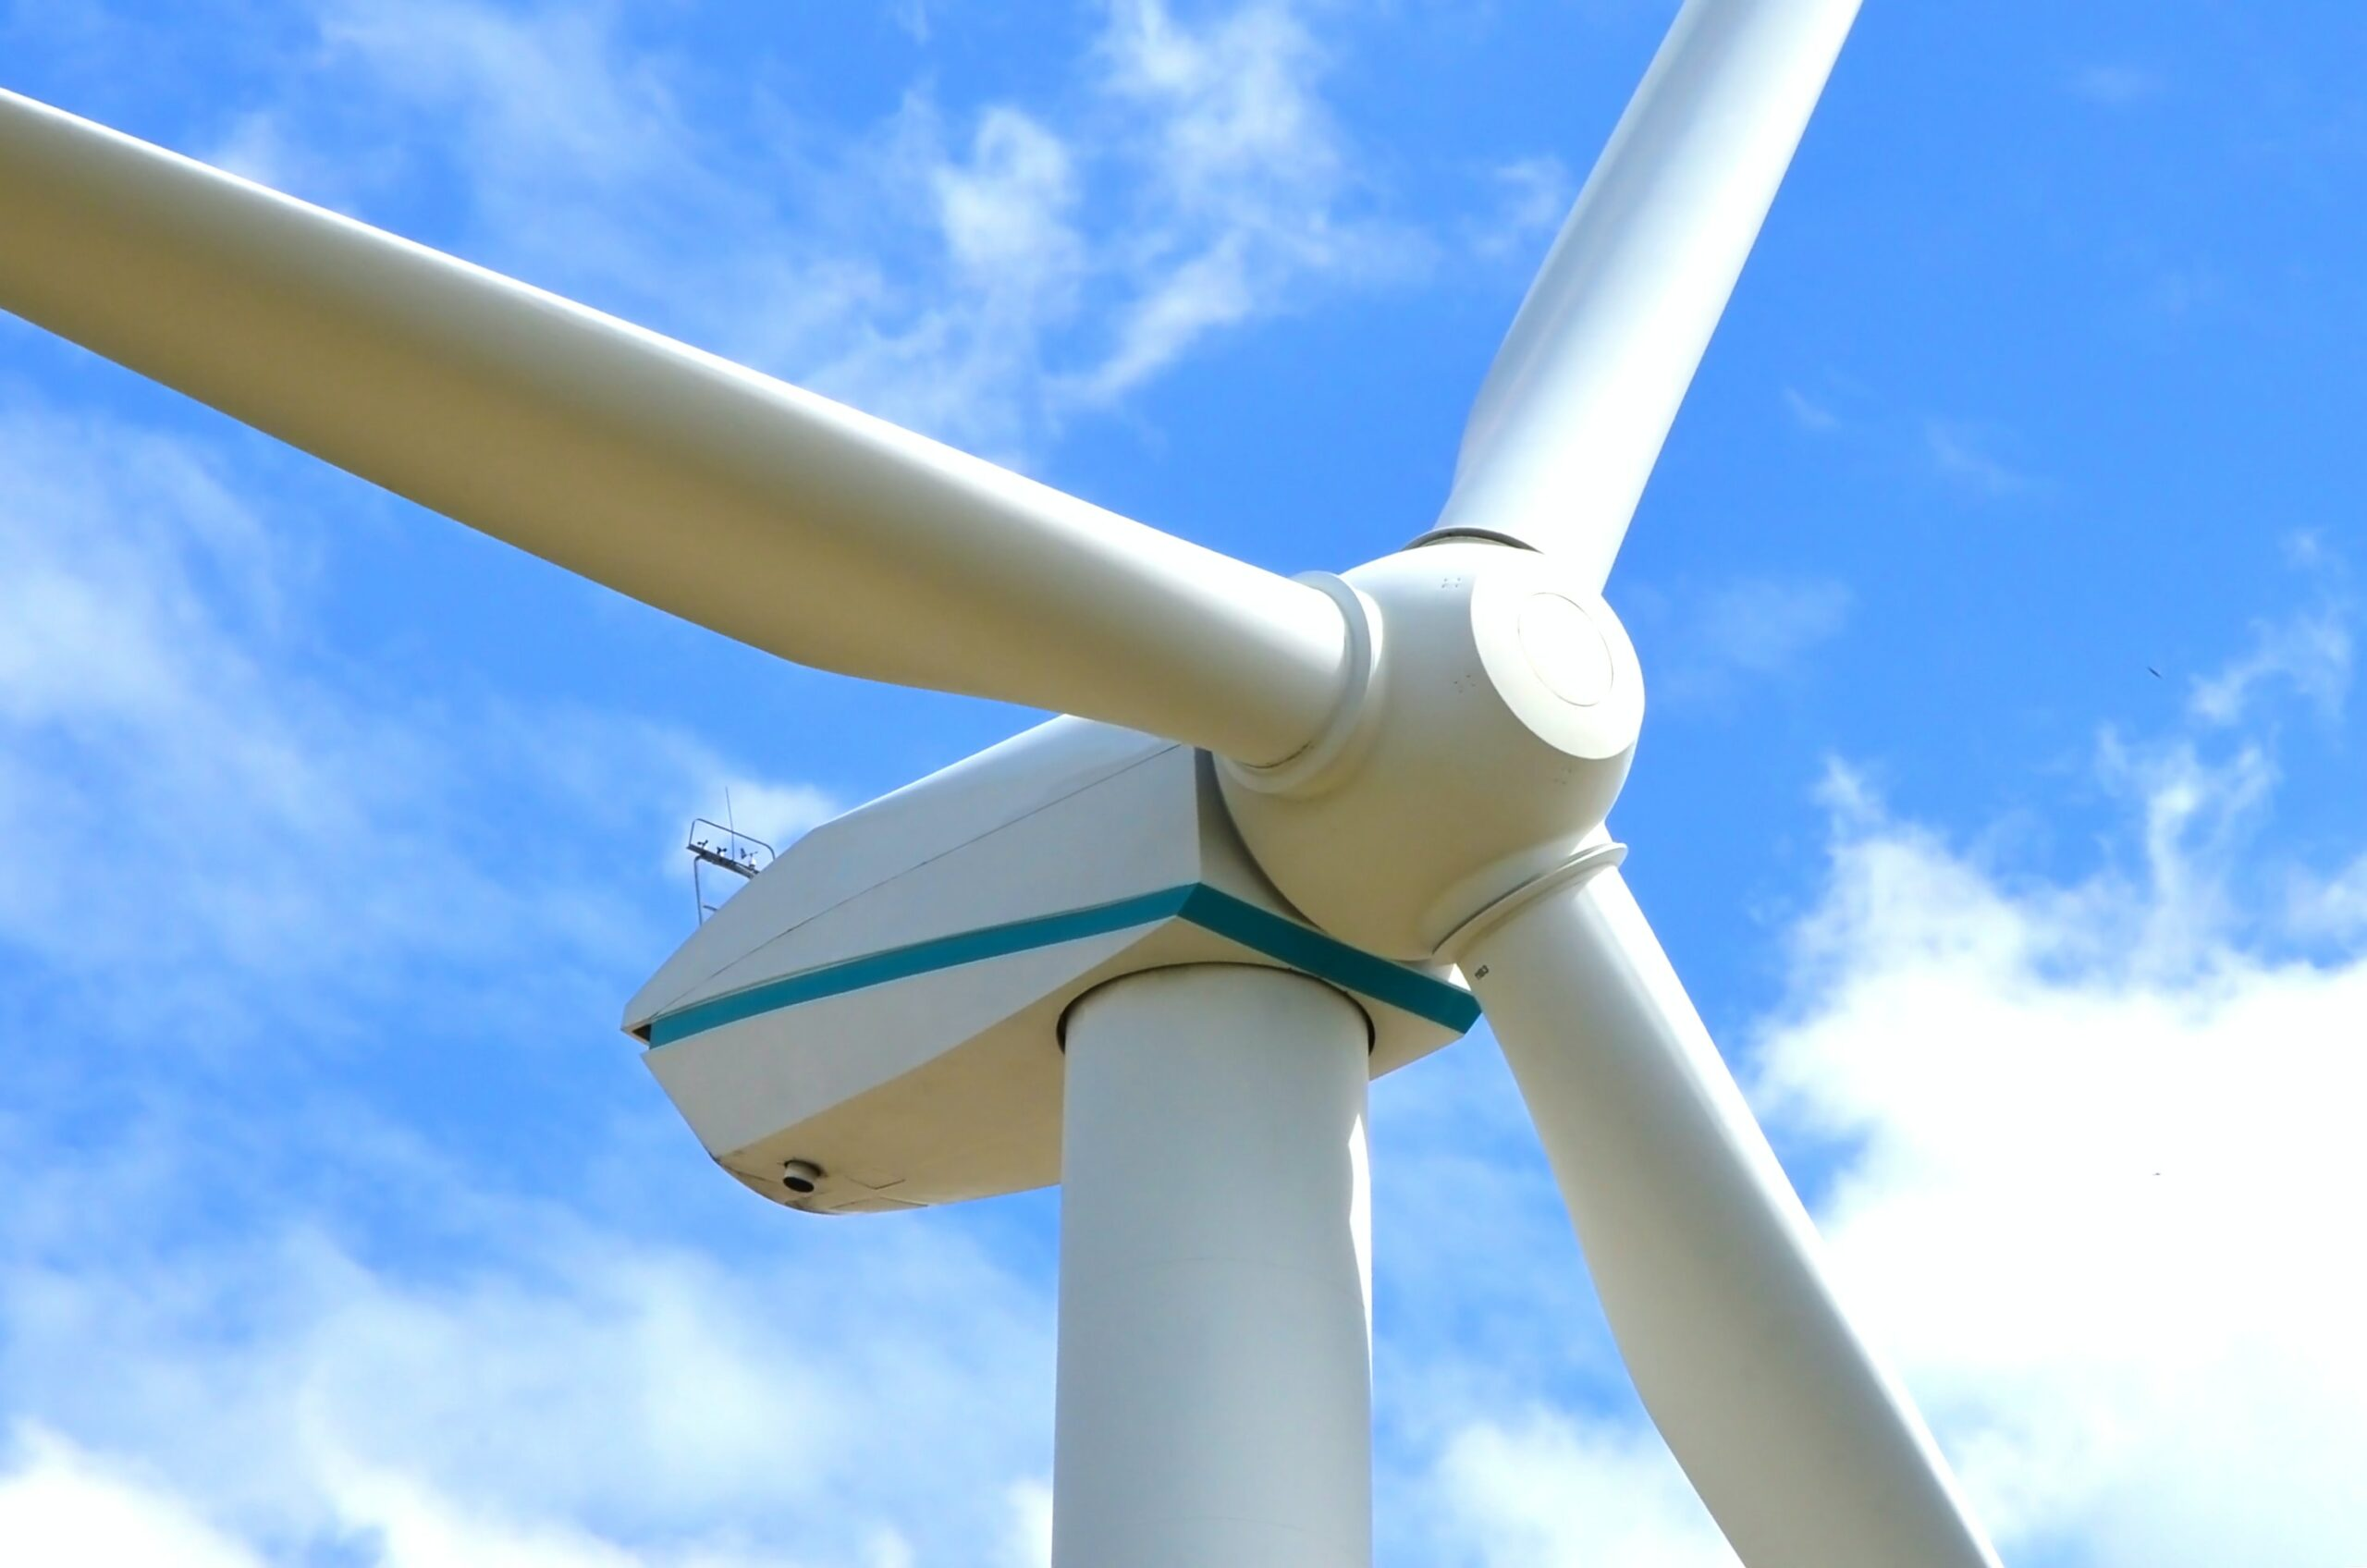 Contract awarded for the biggest wind farm in NSW